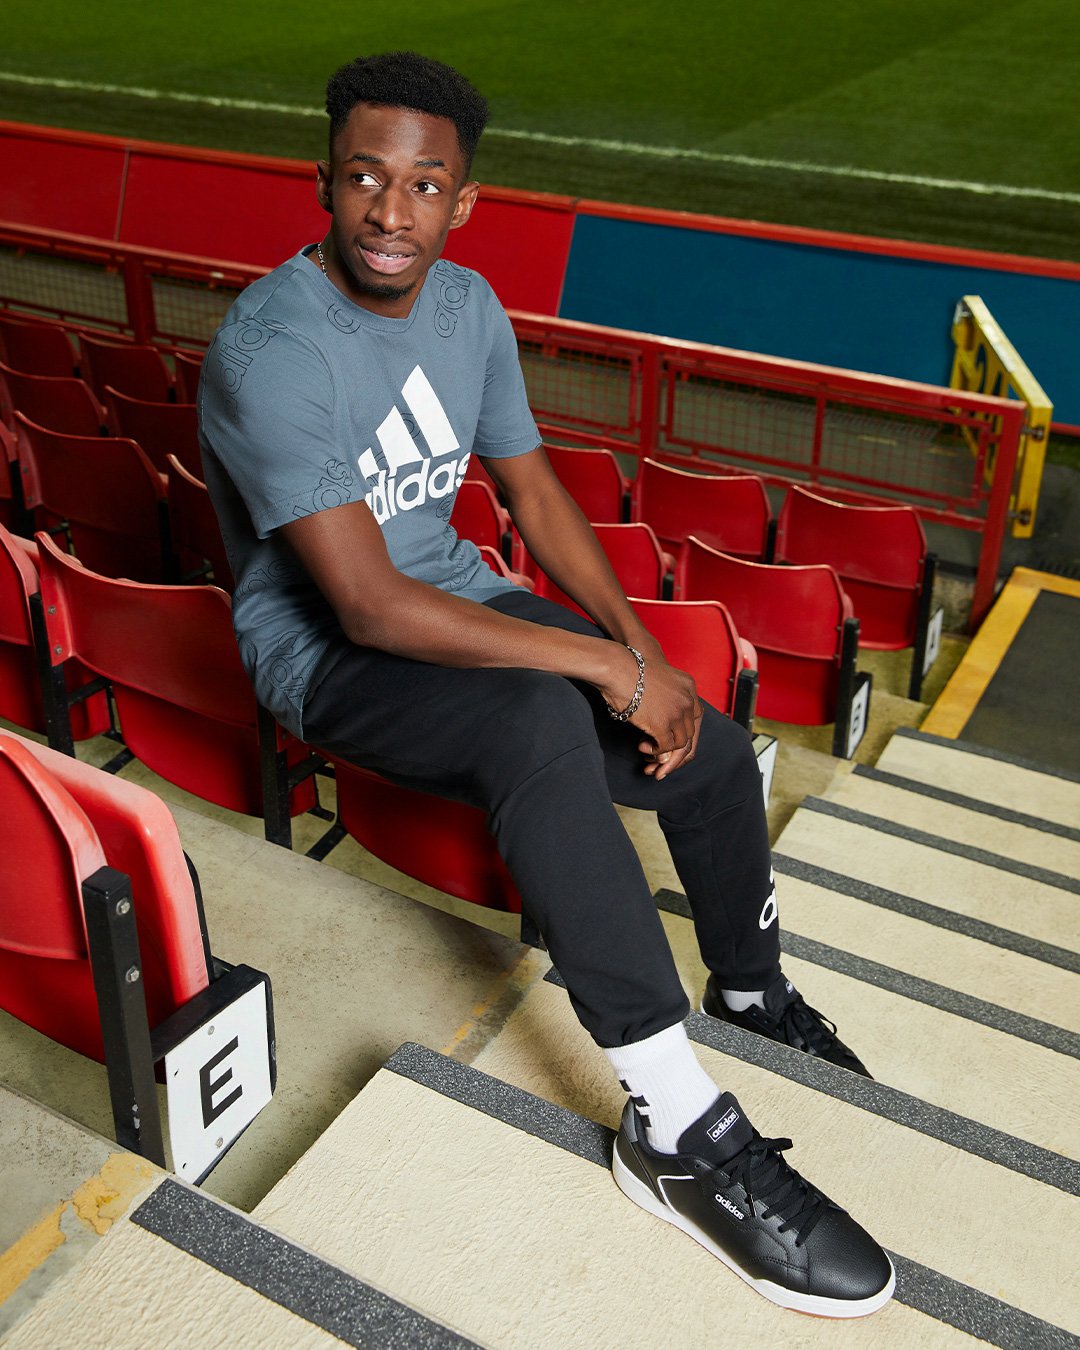 adidas-tobjizzle-supporting-image-1